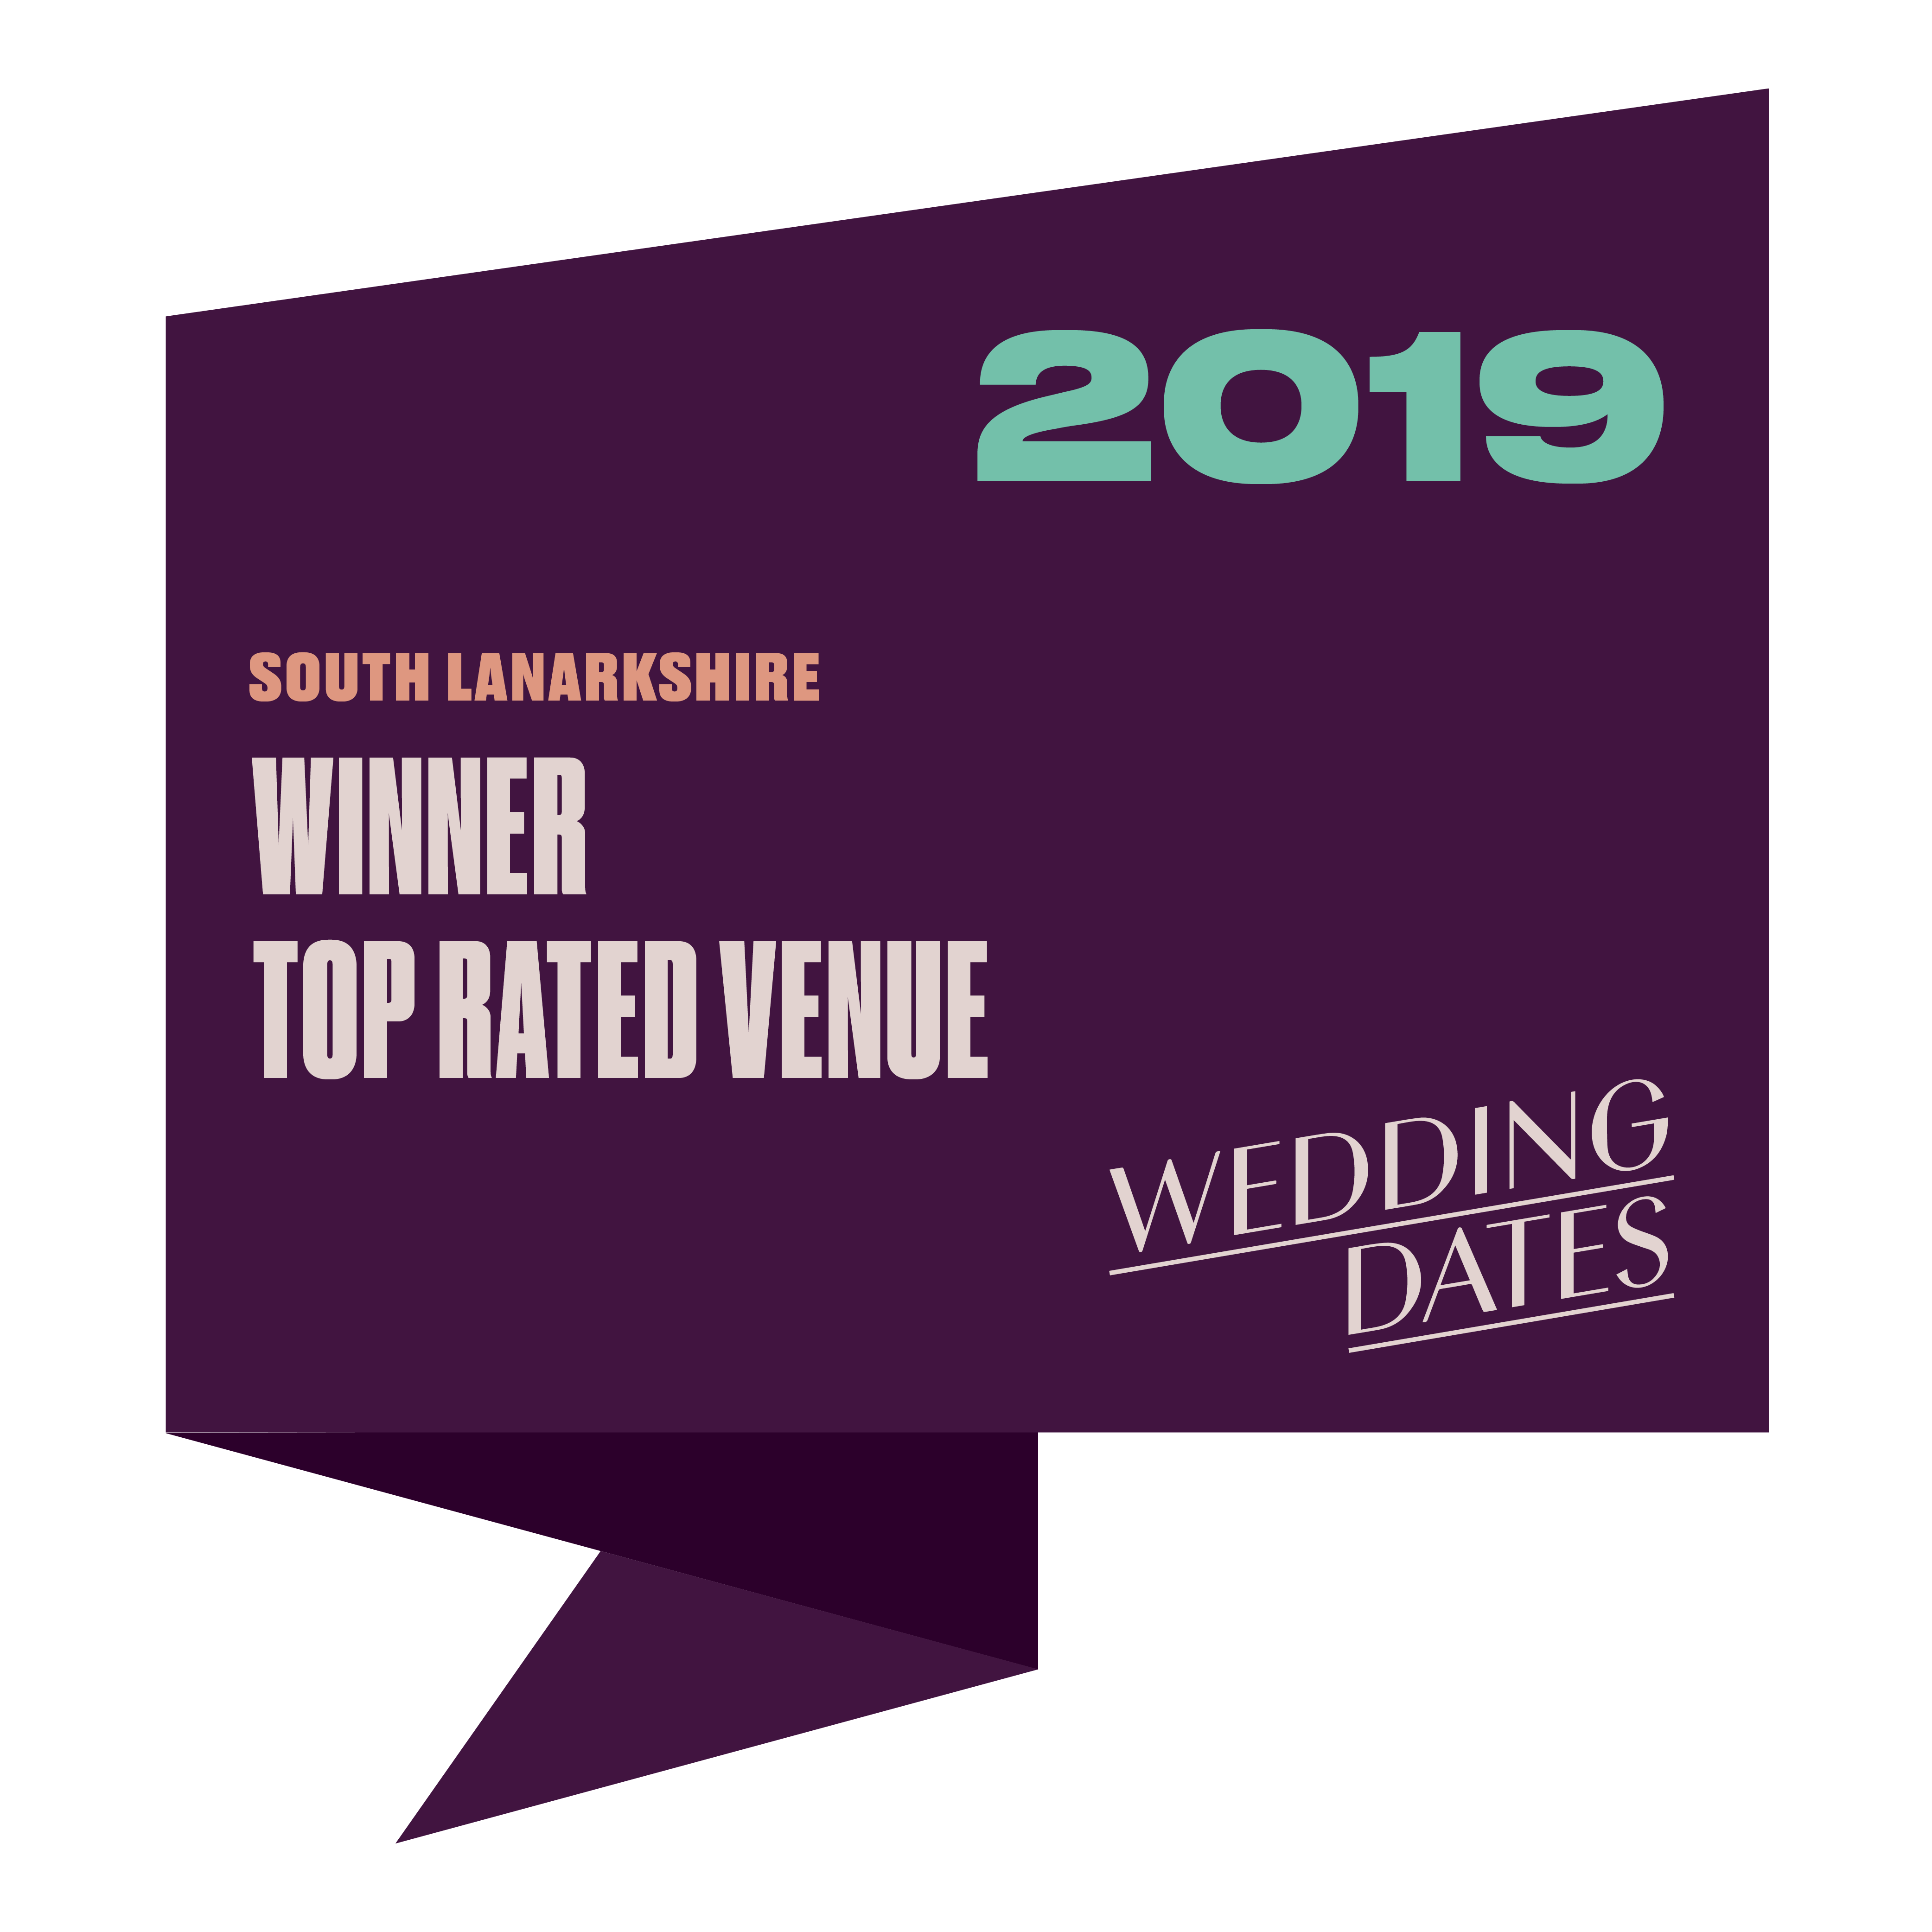 Top Rated Wedding Venues in South Lanarkshire 2019